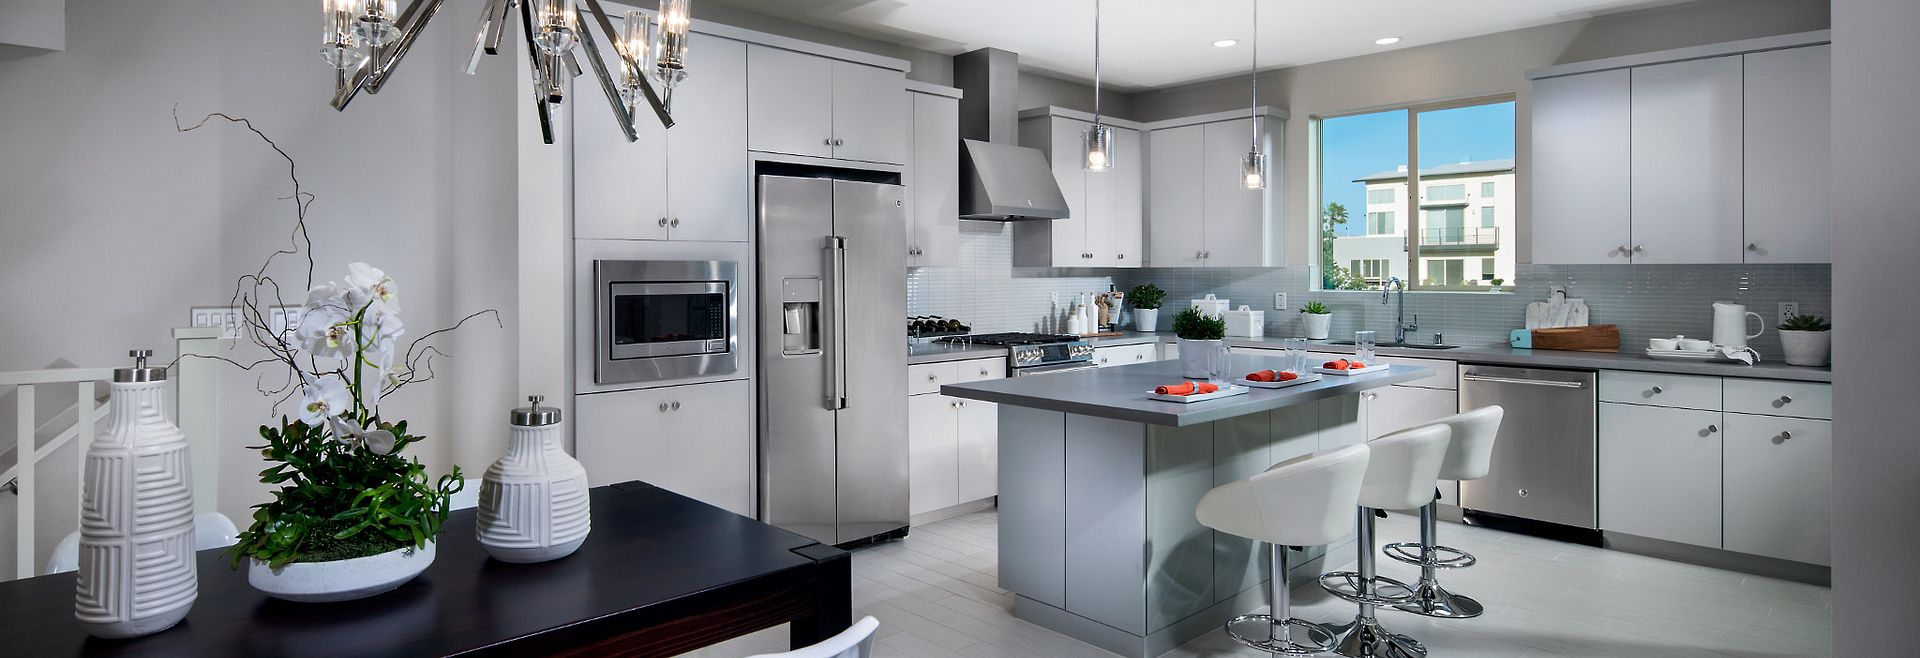 Plan 7 Modern Styled Kitchen with Grey Cabinets and Stainless Steel Appliances